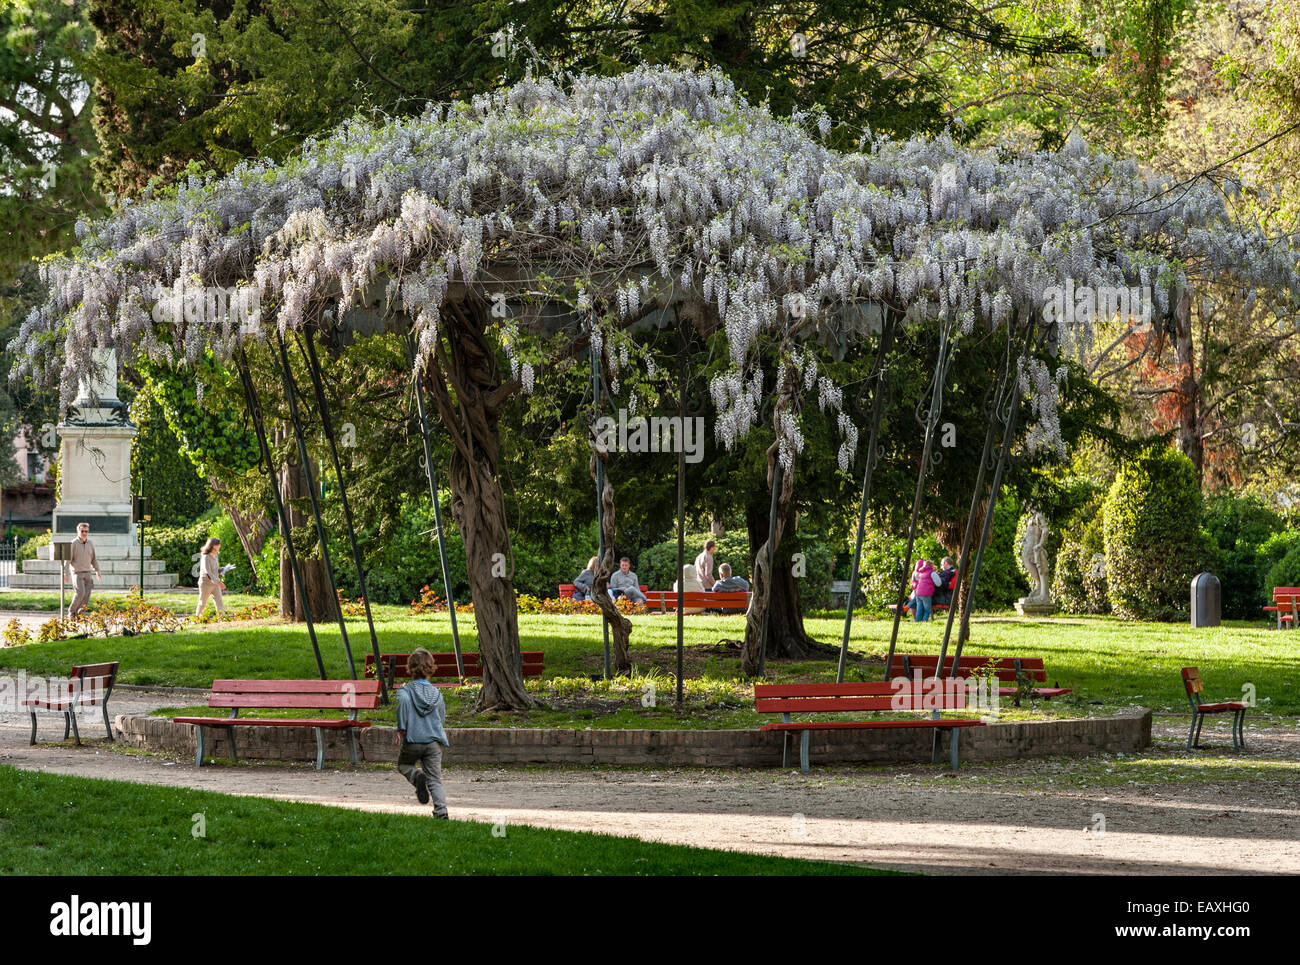 Venice, Italy. In the Biennale Gardens, an old bandstand is covered with white wisteria in the spring - Stock Image